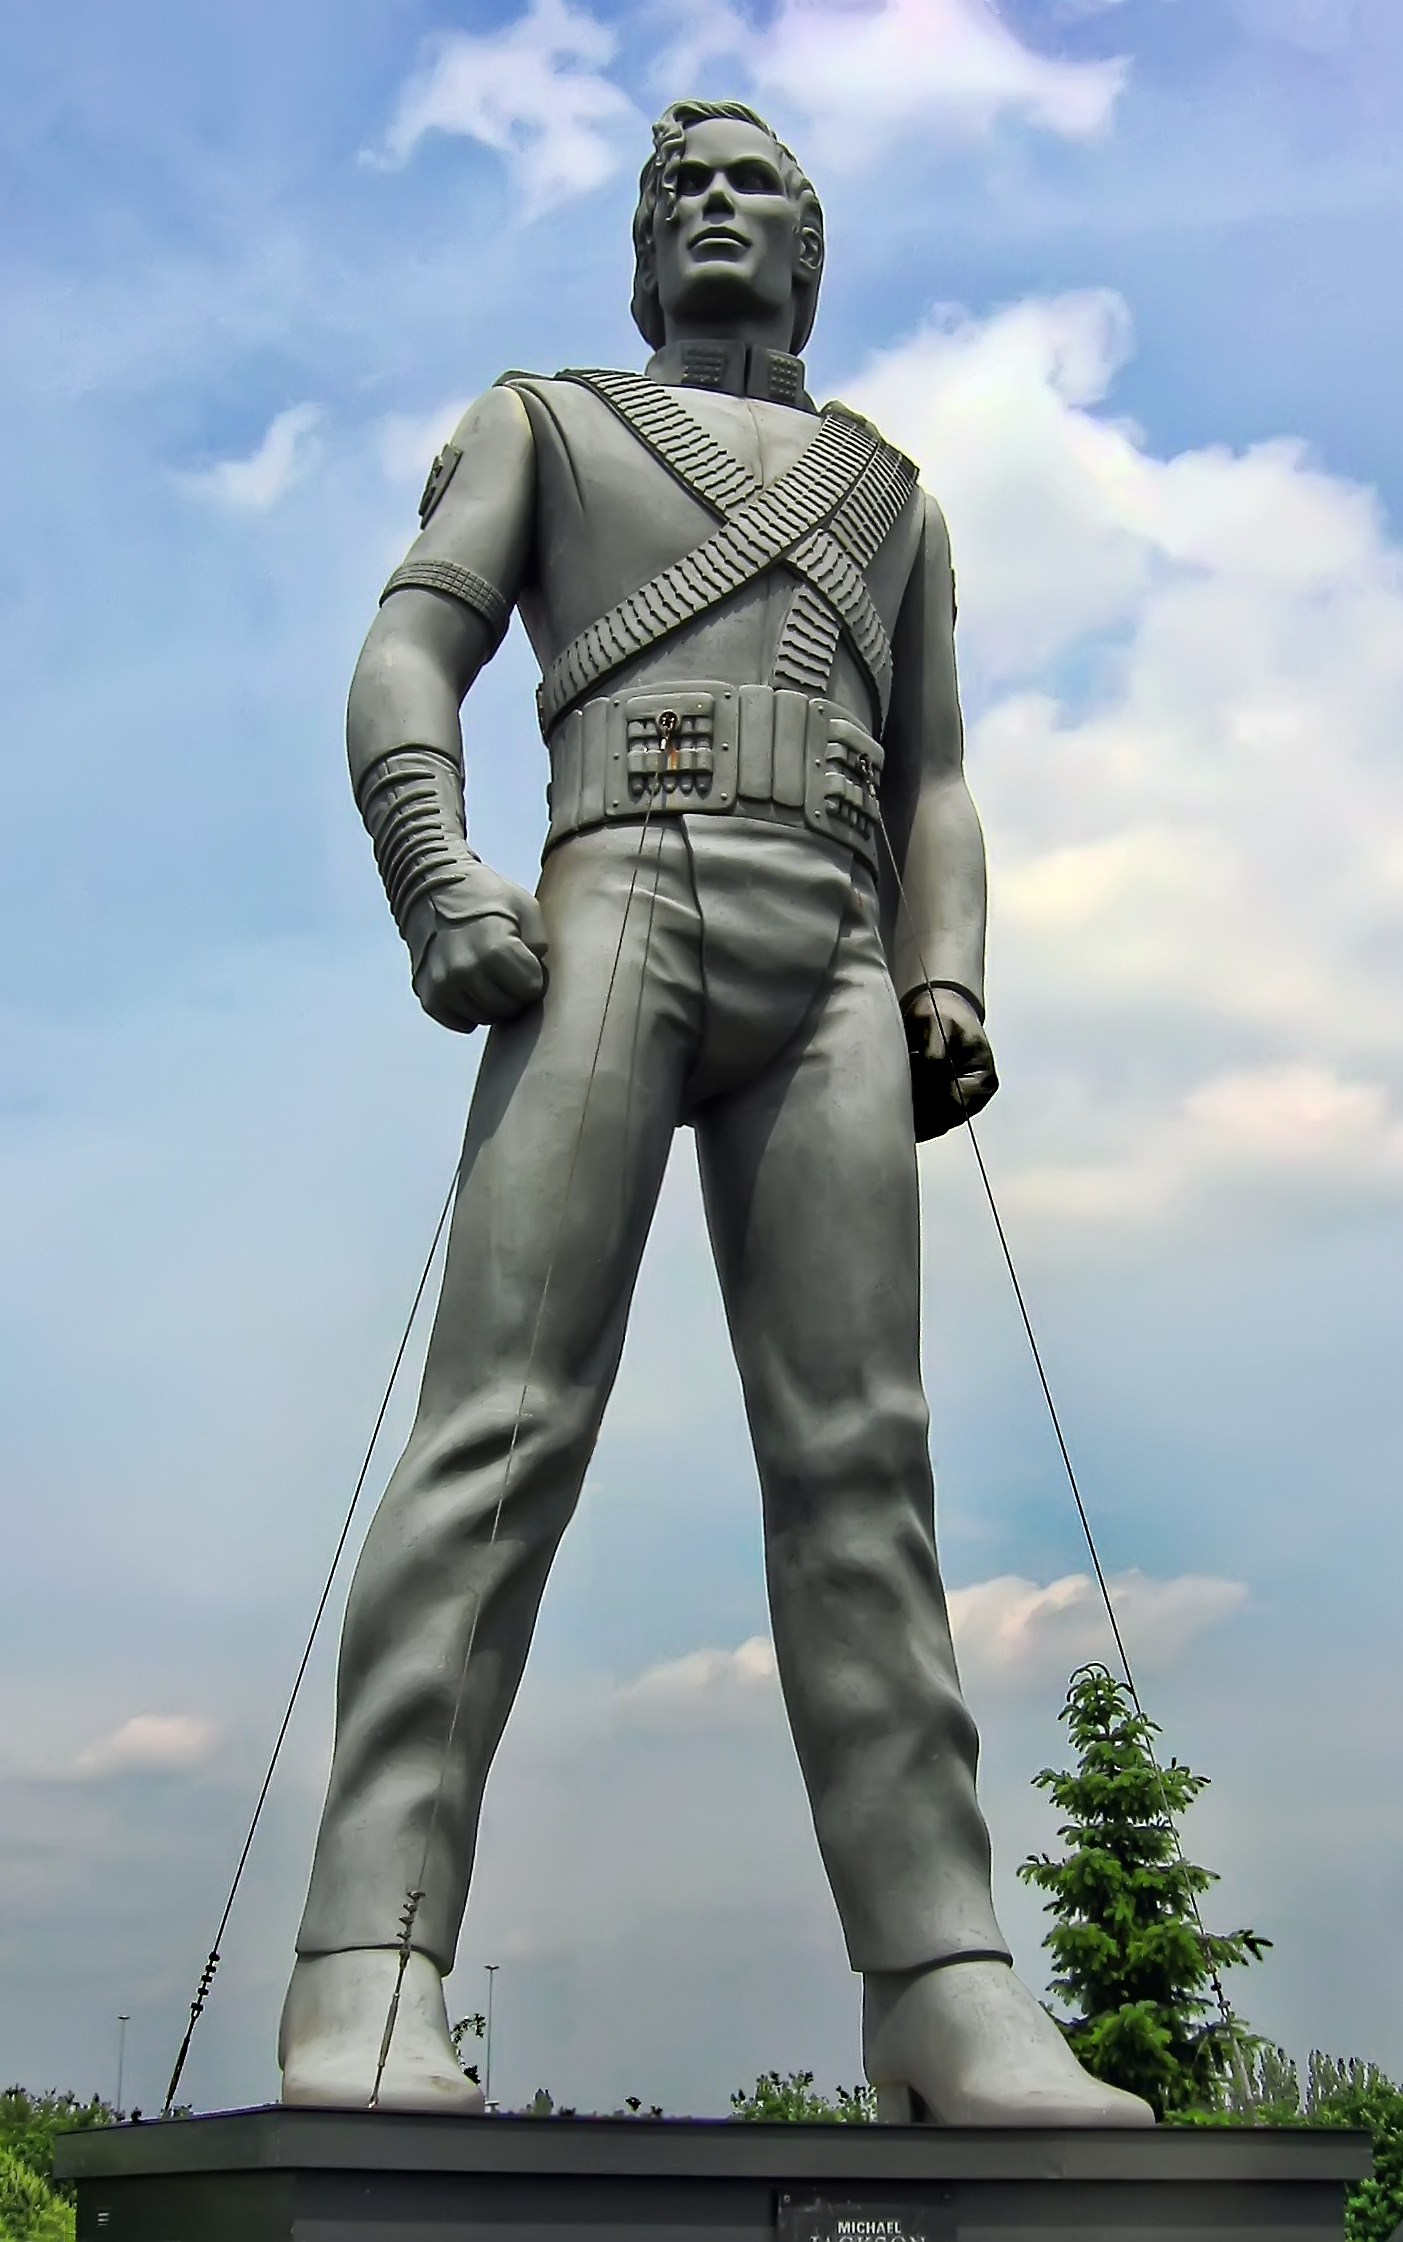 A silver colored statue of a male. The statue is placed standing up with its arms bent inward and both legs spaced apart. The statue's clothes have wrinkles and it is wearing heeled shoes. In the background, a tree and a light blue sky with multiple clouds can be seen.